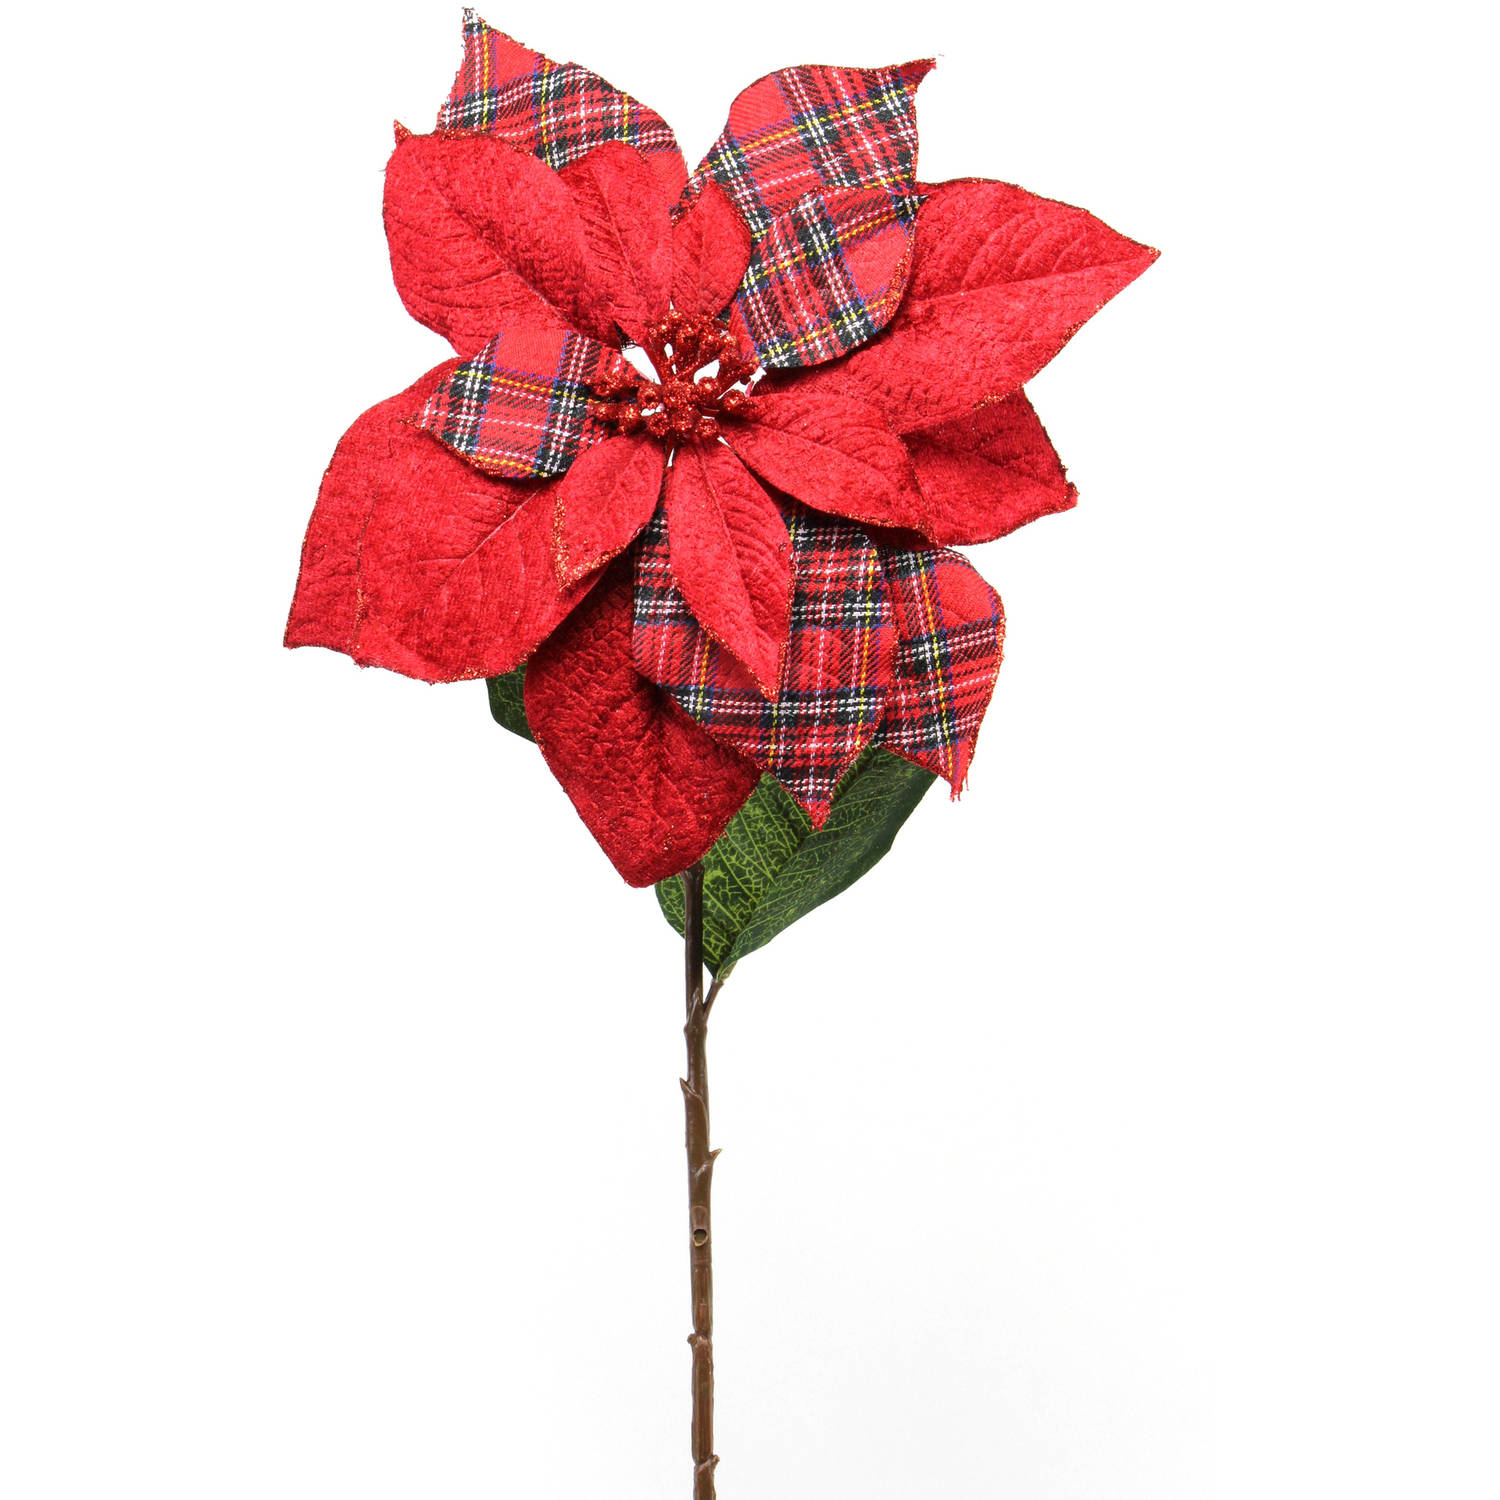 "Flower Shop Collection 5"" Poinsettia Stem, 12-Pack"